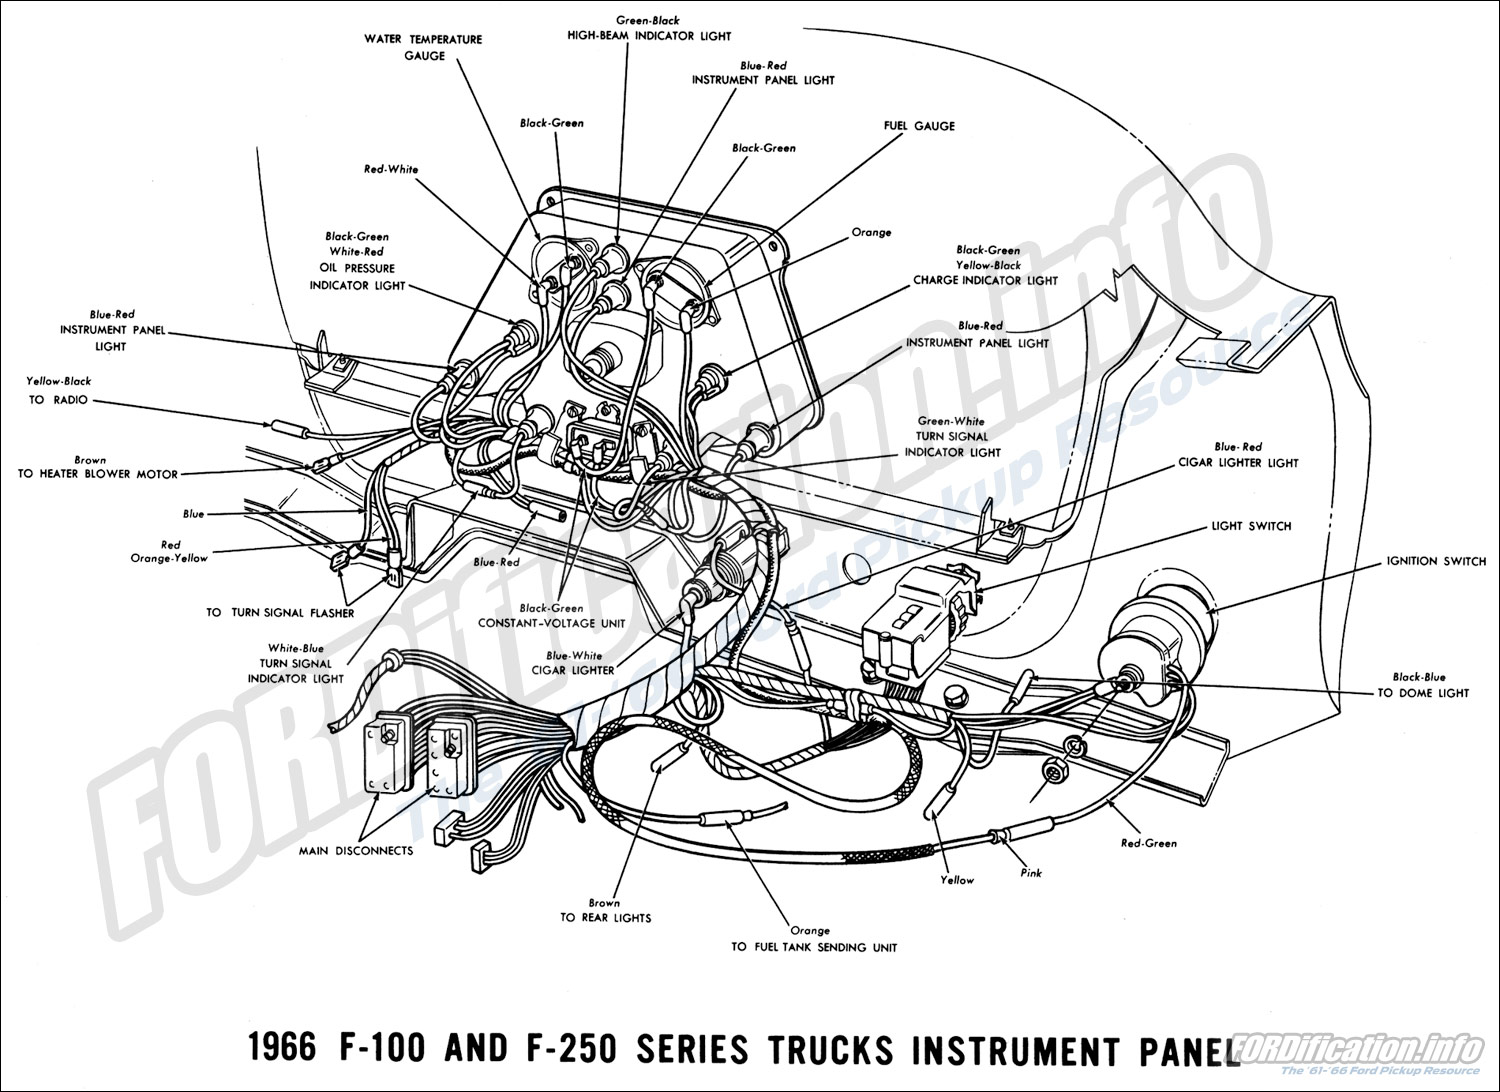 [DIAGRAM_3US]  1966 Ford Truck Wiring Diagrams - FORDification.info - The '61-'66 Ford  Pickup Resource | 1966 Ford Truck Wiring Diagram |  | FORDification.info